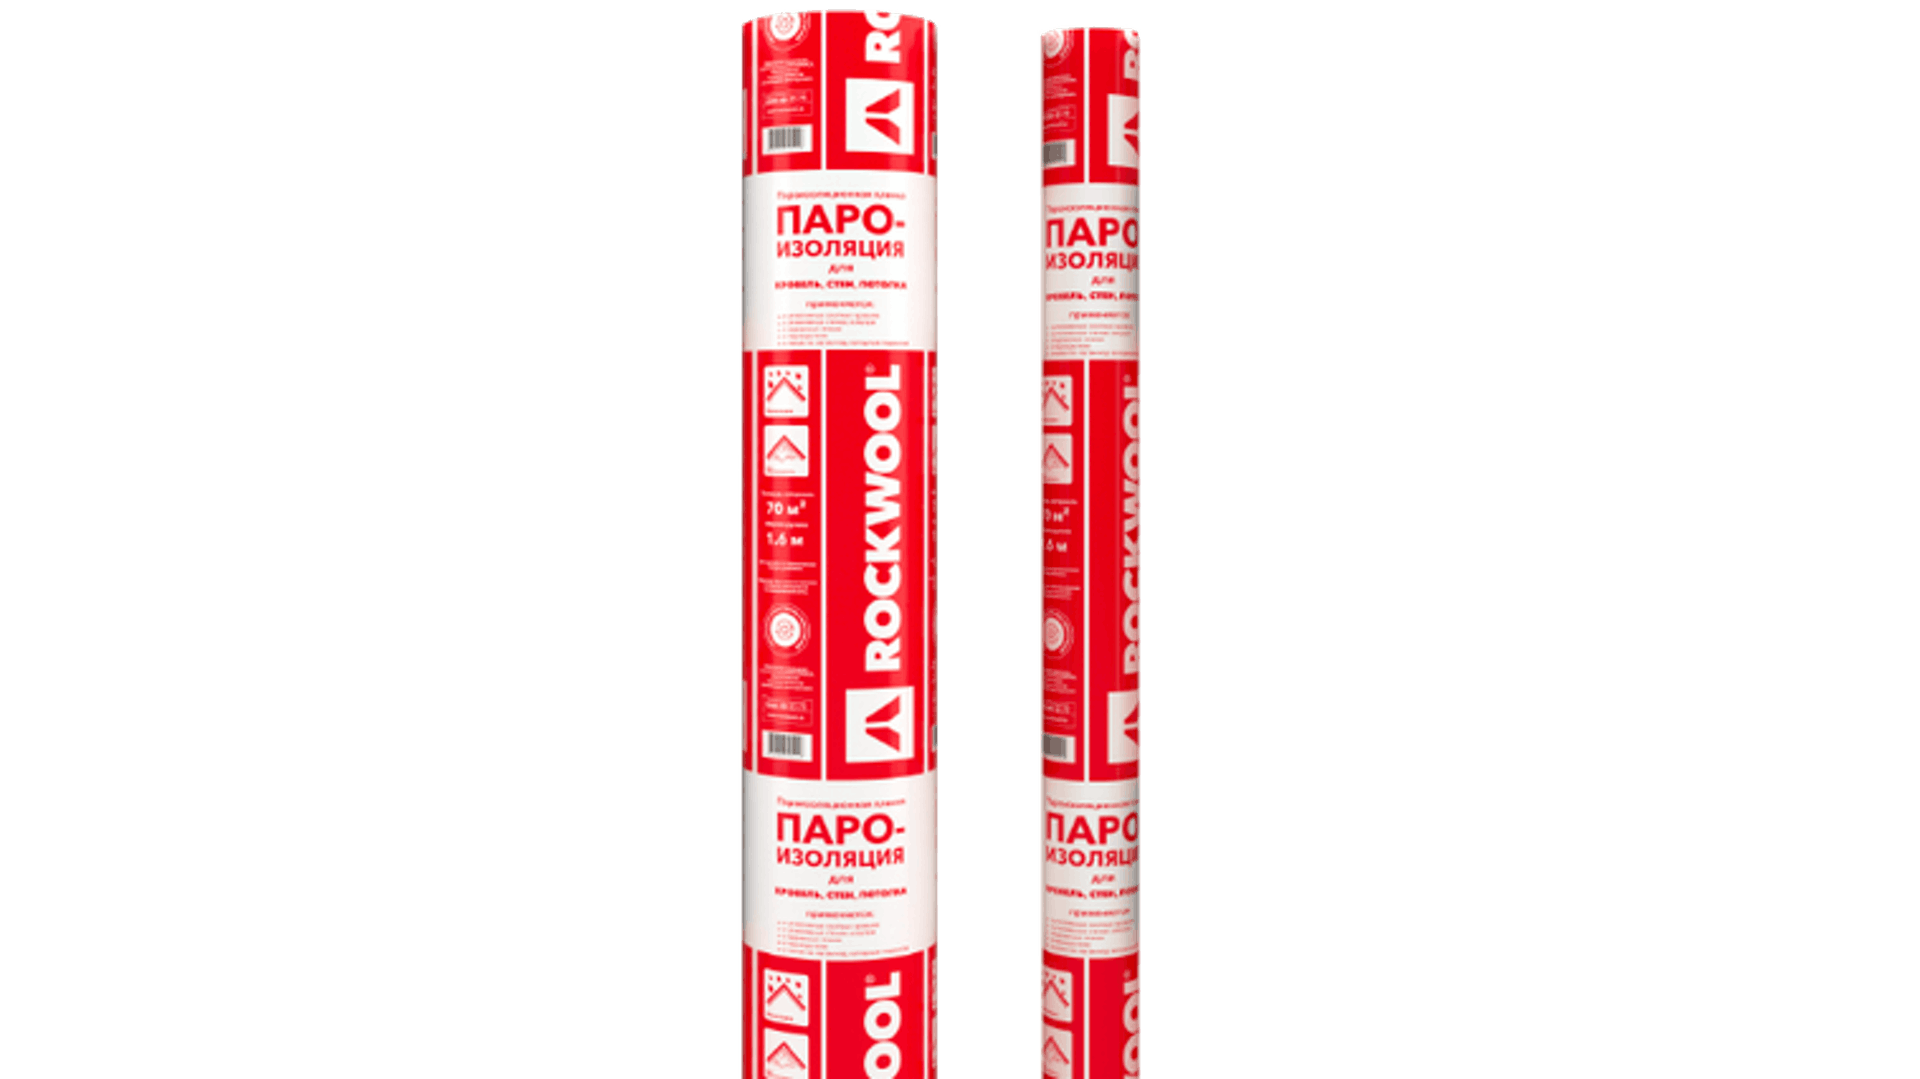 ROCKWOOL vapor barrier for roofs 30m², package, product, components, HVAC, Internal walls, Pitched roof, Monolithic ceilings